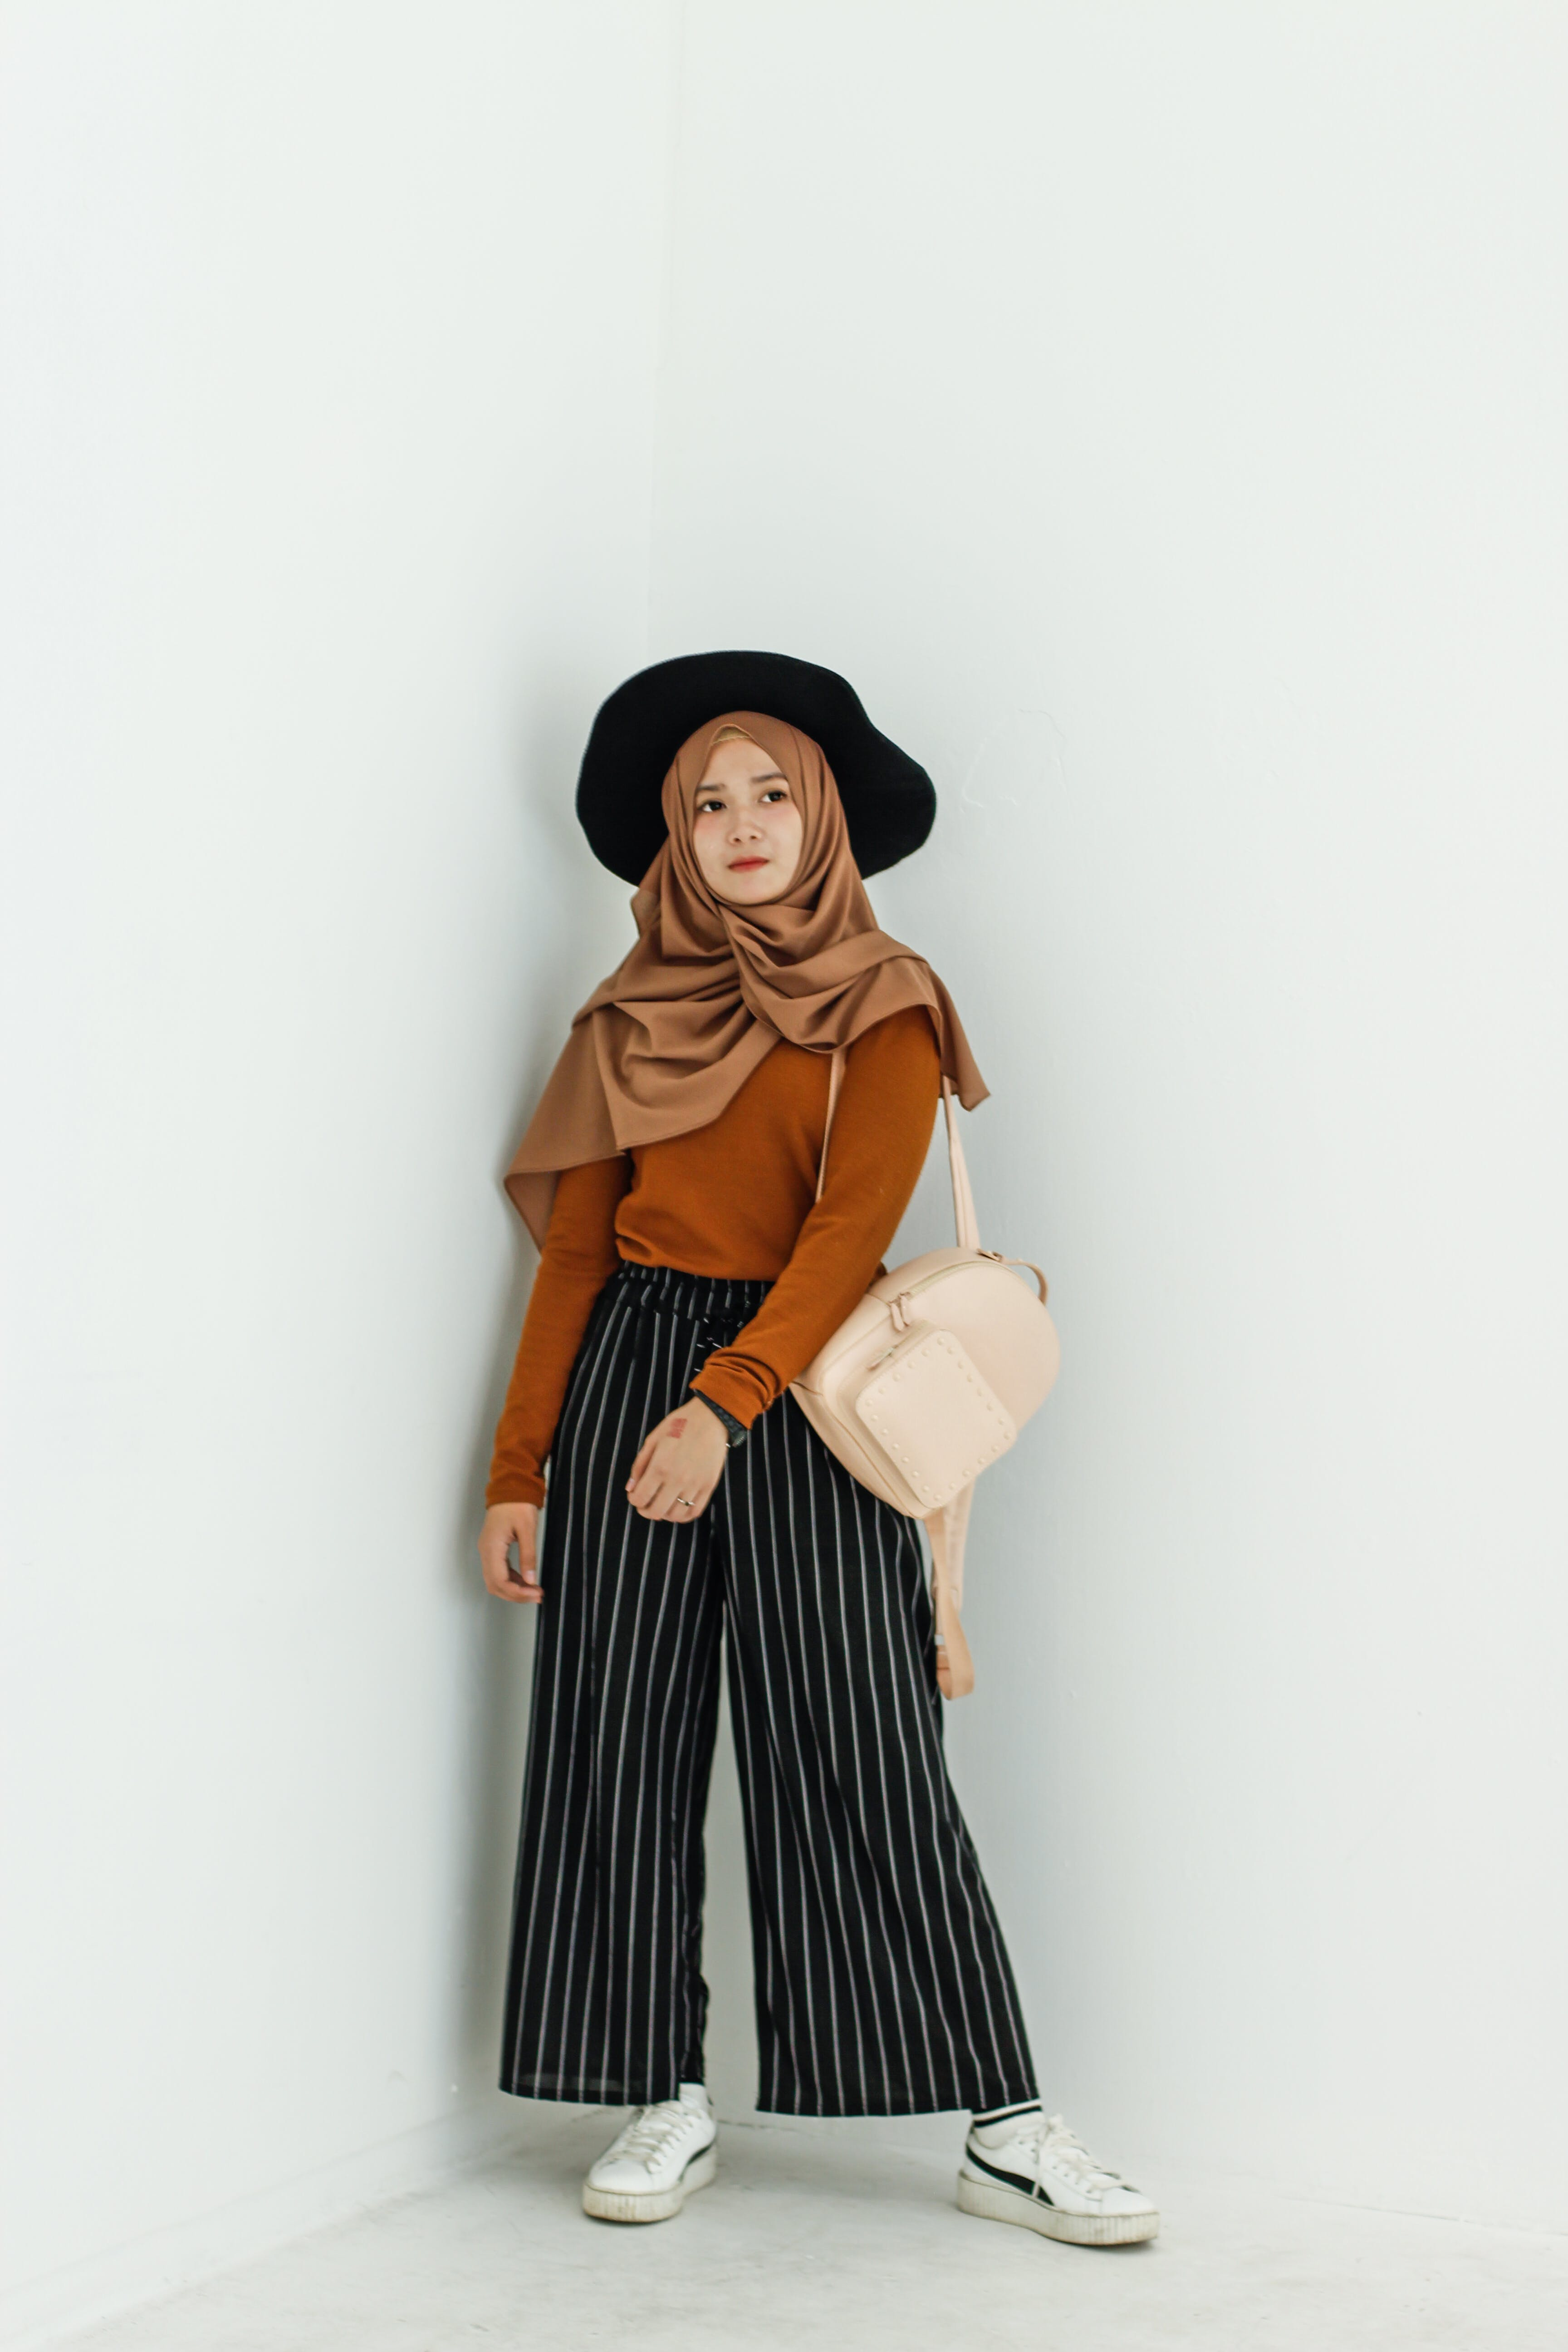 Woman in Brown Long-sleeved Shirt and Brown Hijab Headdress With Beige Leather Backpack